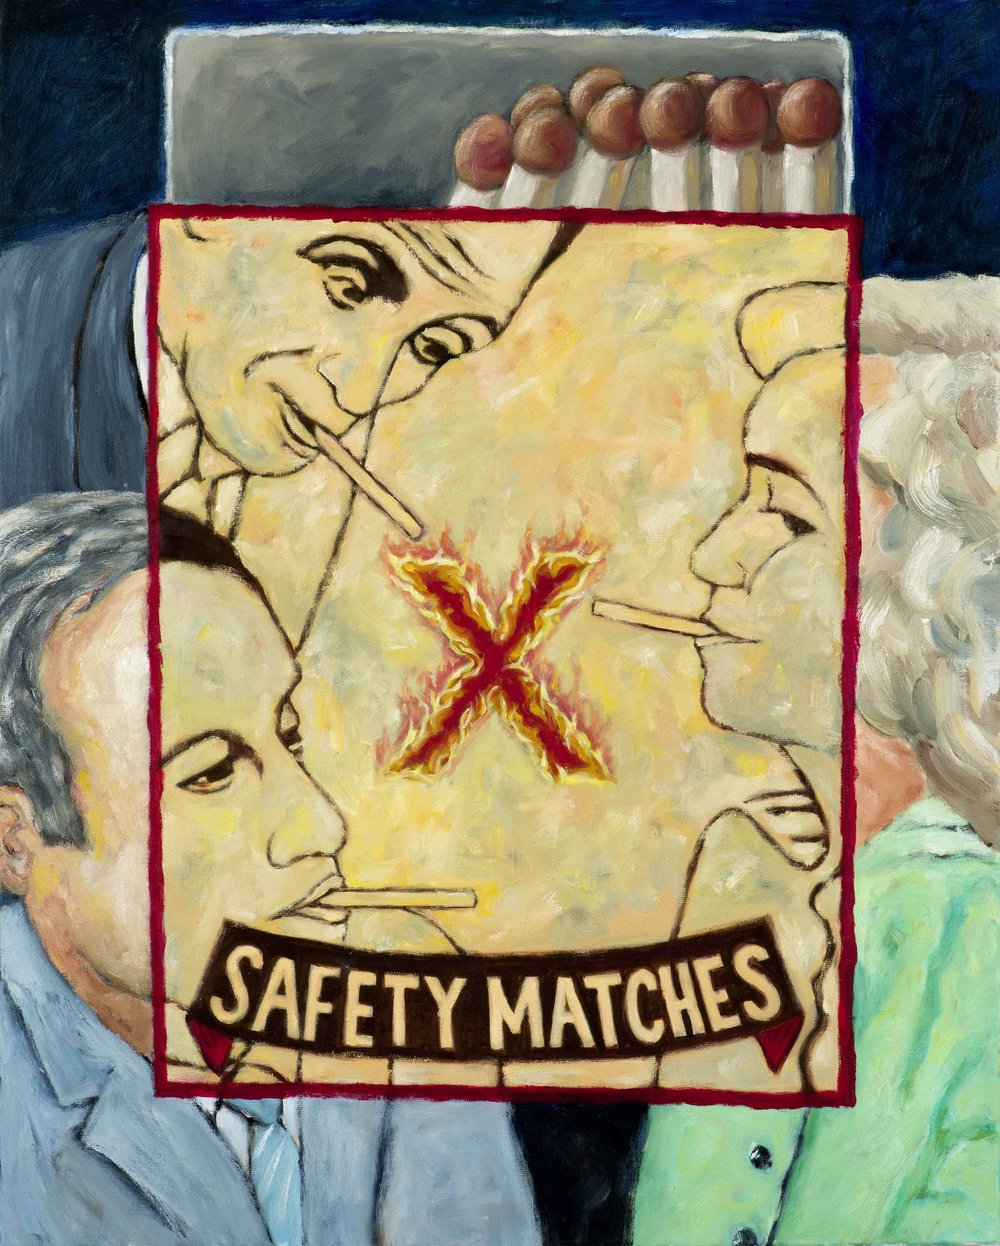 Safety matches   2017  oil on canvas  80 x 100 cm  private collection